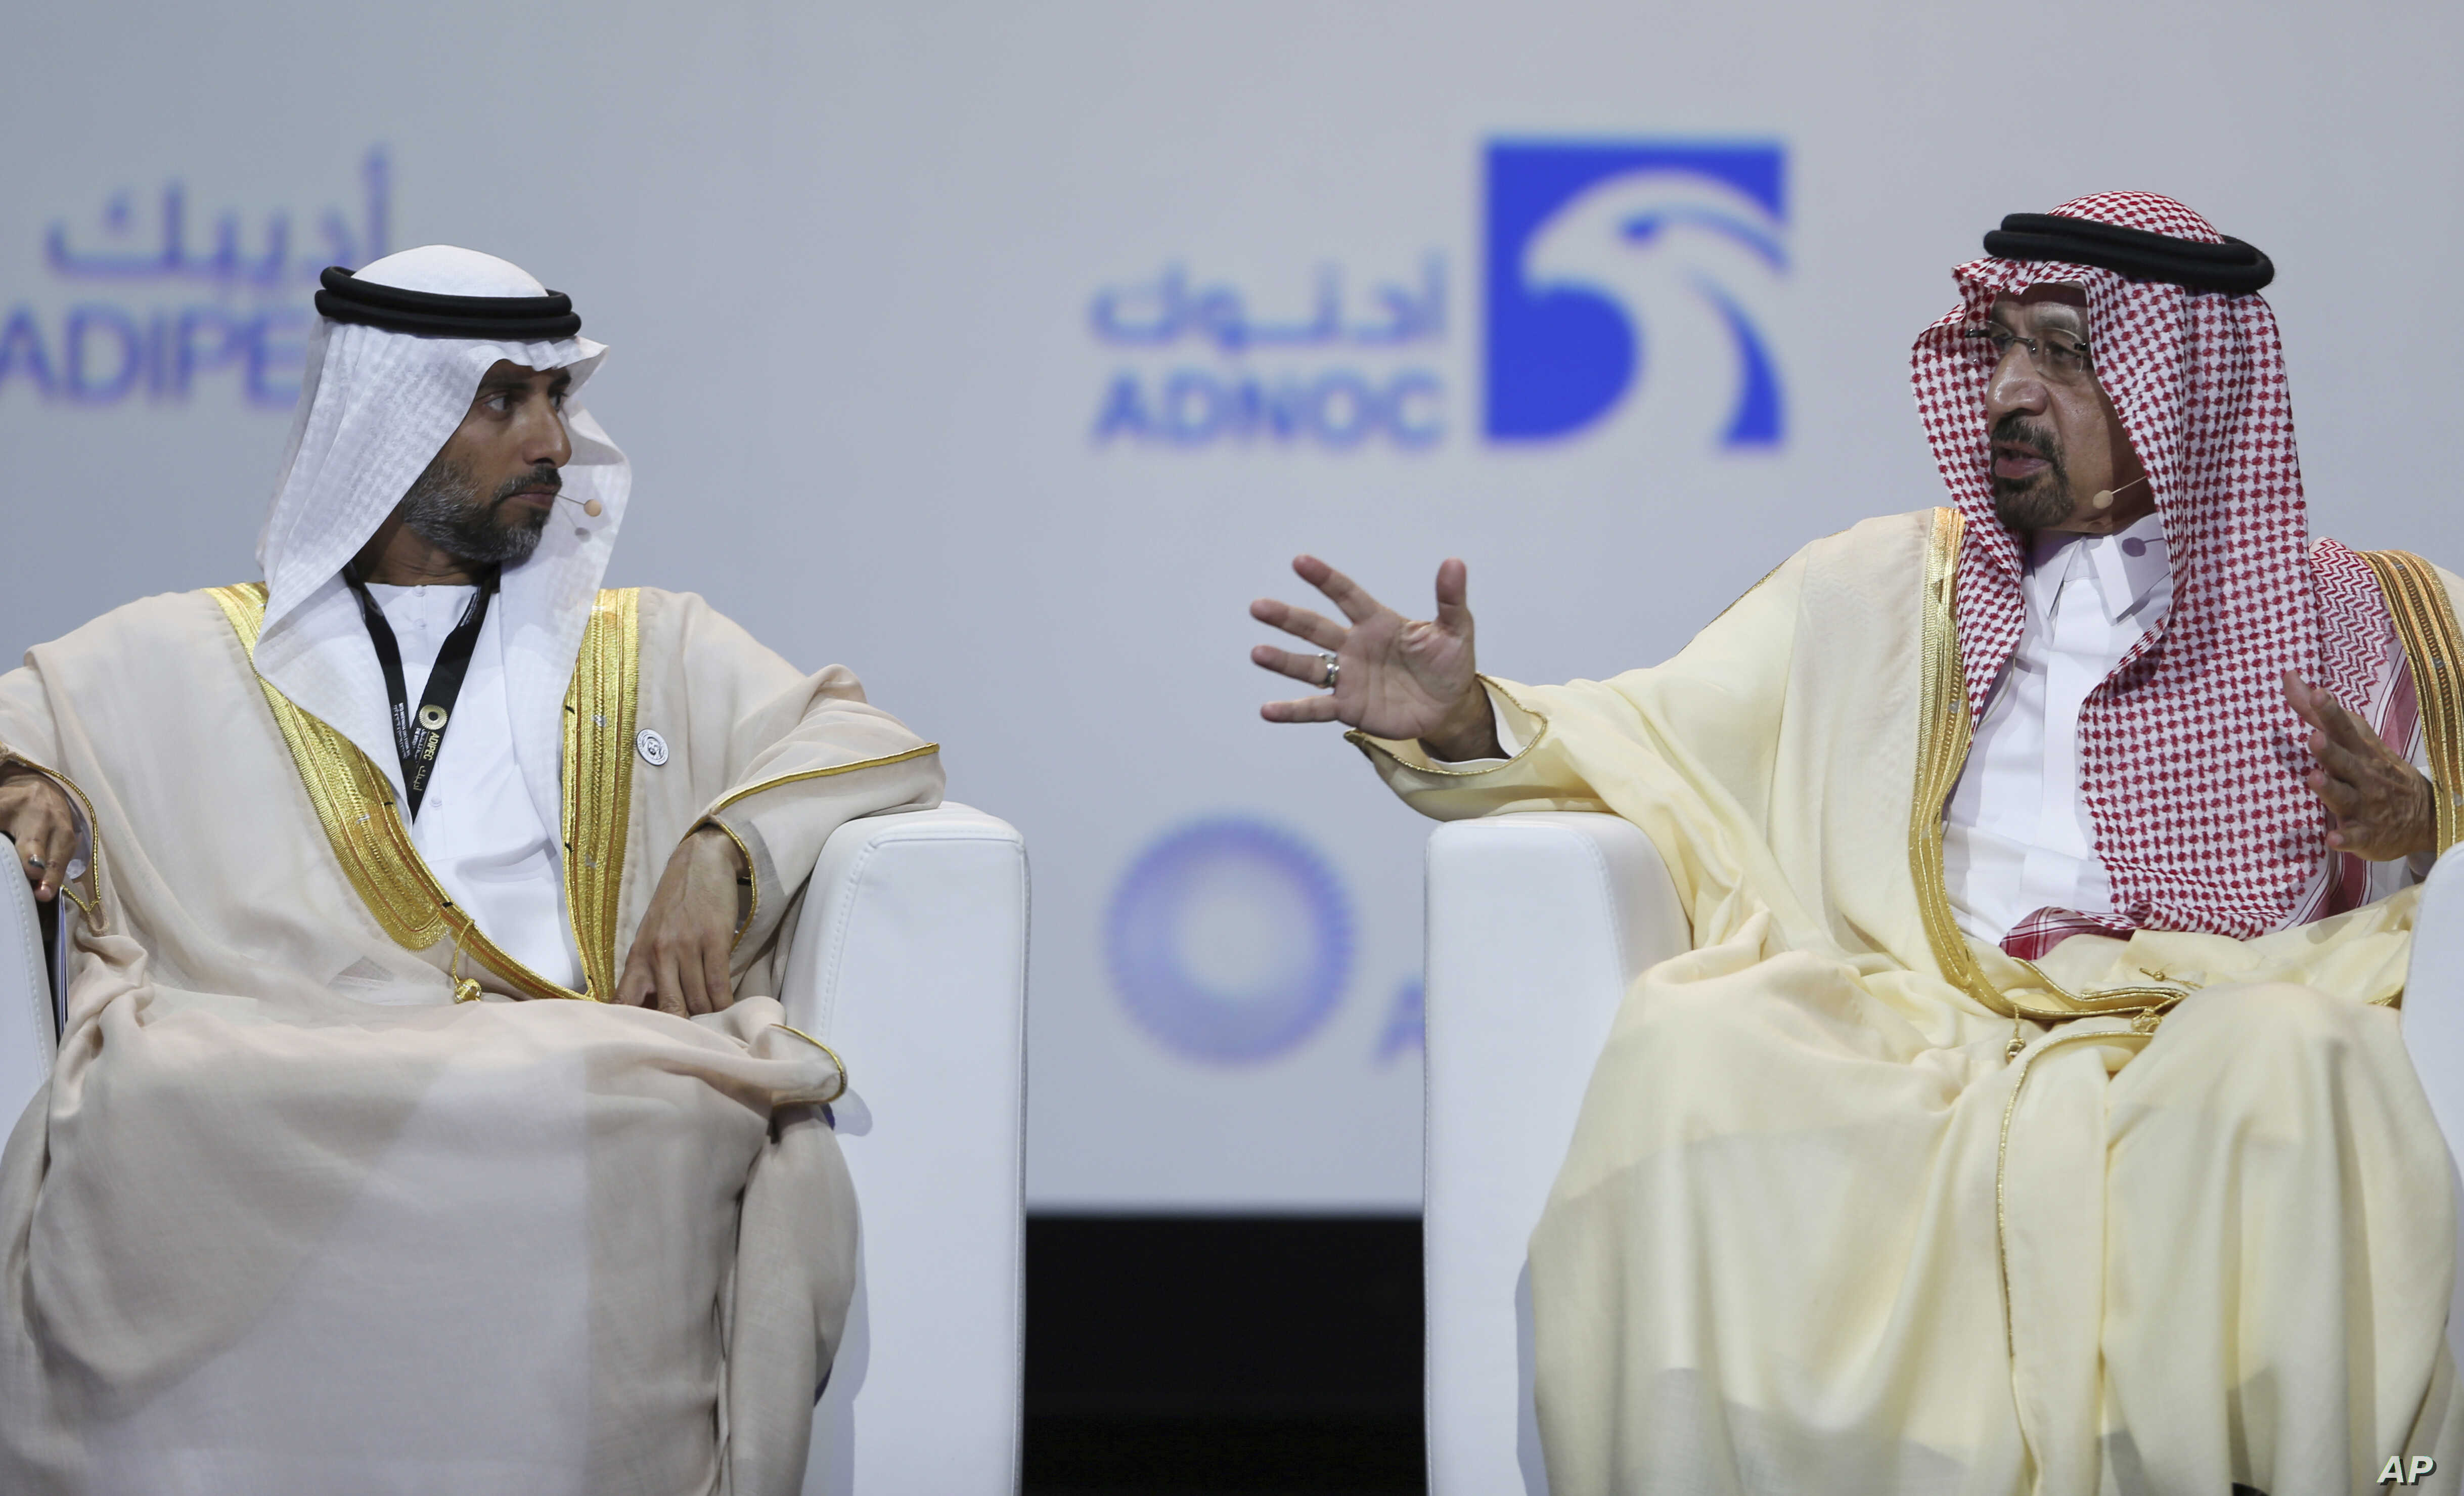 UAE Energy Minister Suhail al-Mazrouei, left, listens to Khalid al-Falih, Saudi Energy and Oil Minister, in the opening ceremony of the Abu Dhabi International Exhibition & Conference, ADIPEC, in Abu Dhabi, United Arab Emirates, Nov.12, 2018.